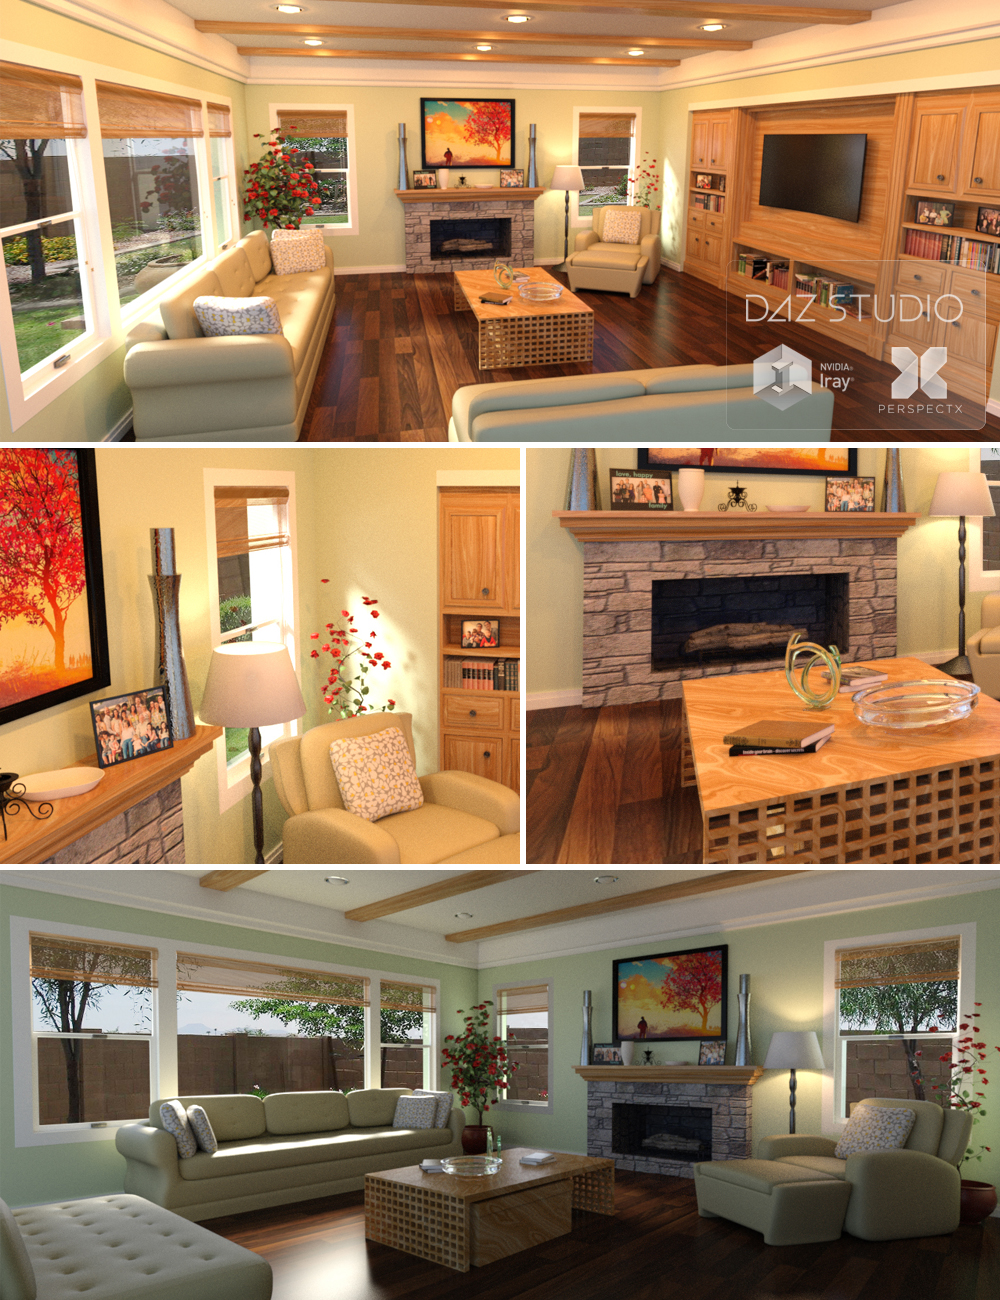 PerspectX Family Room by: PerspectX, 3D Models by Daz 3D